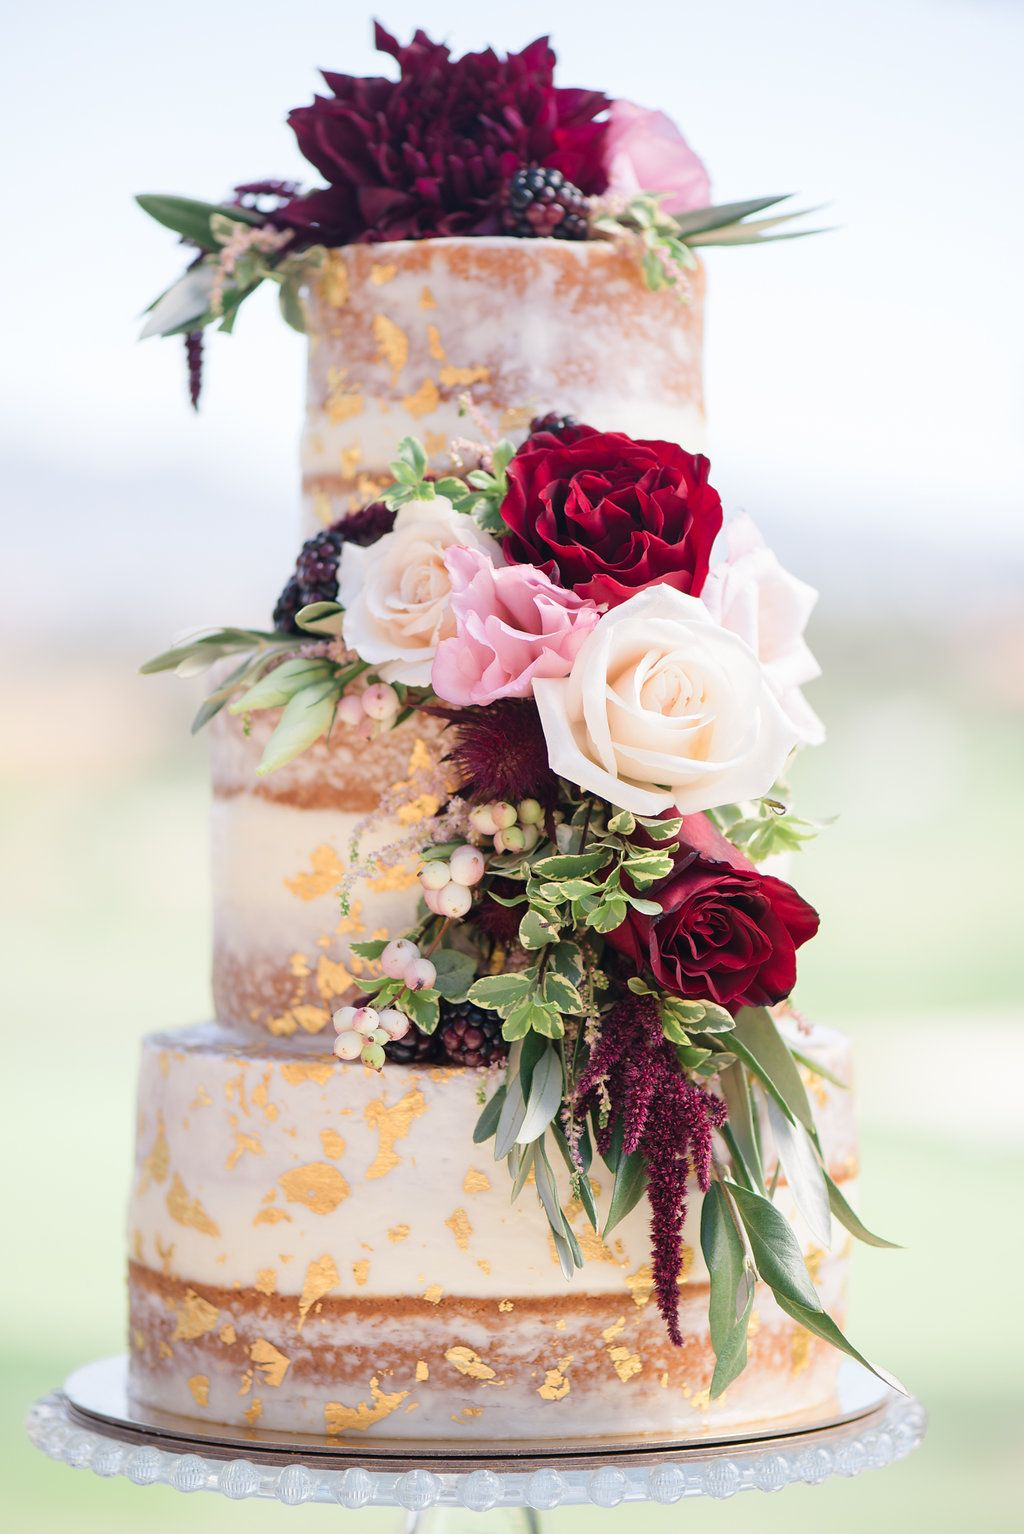 Heart-melting Vintage Wedding Cake Ideas to Love